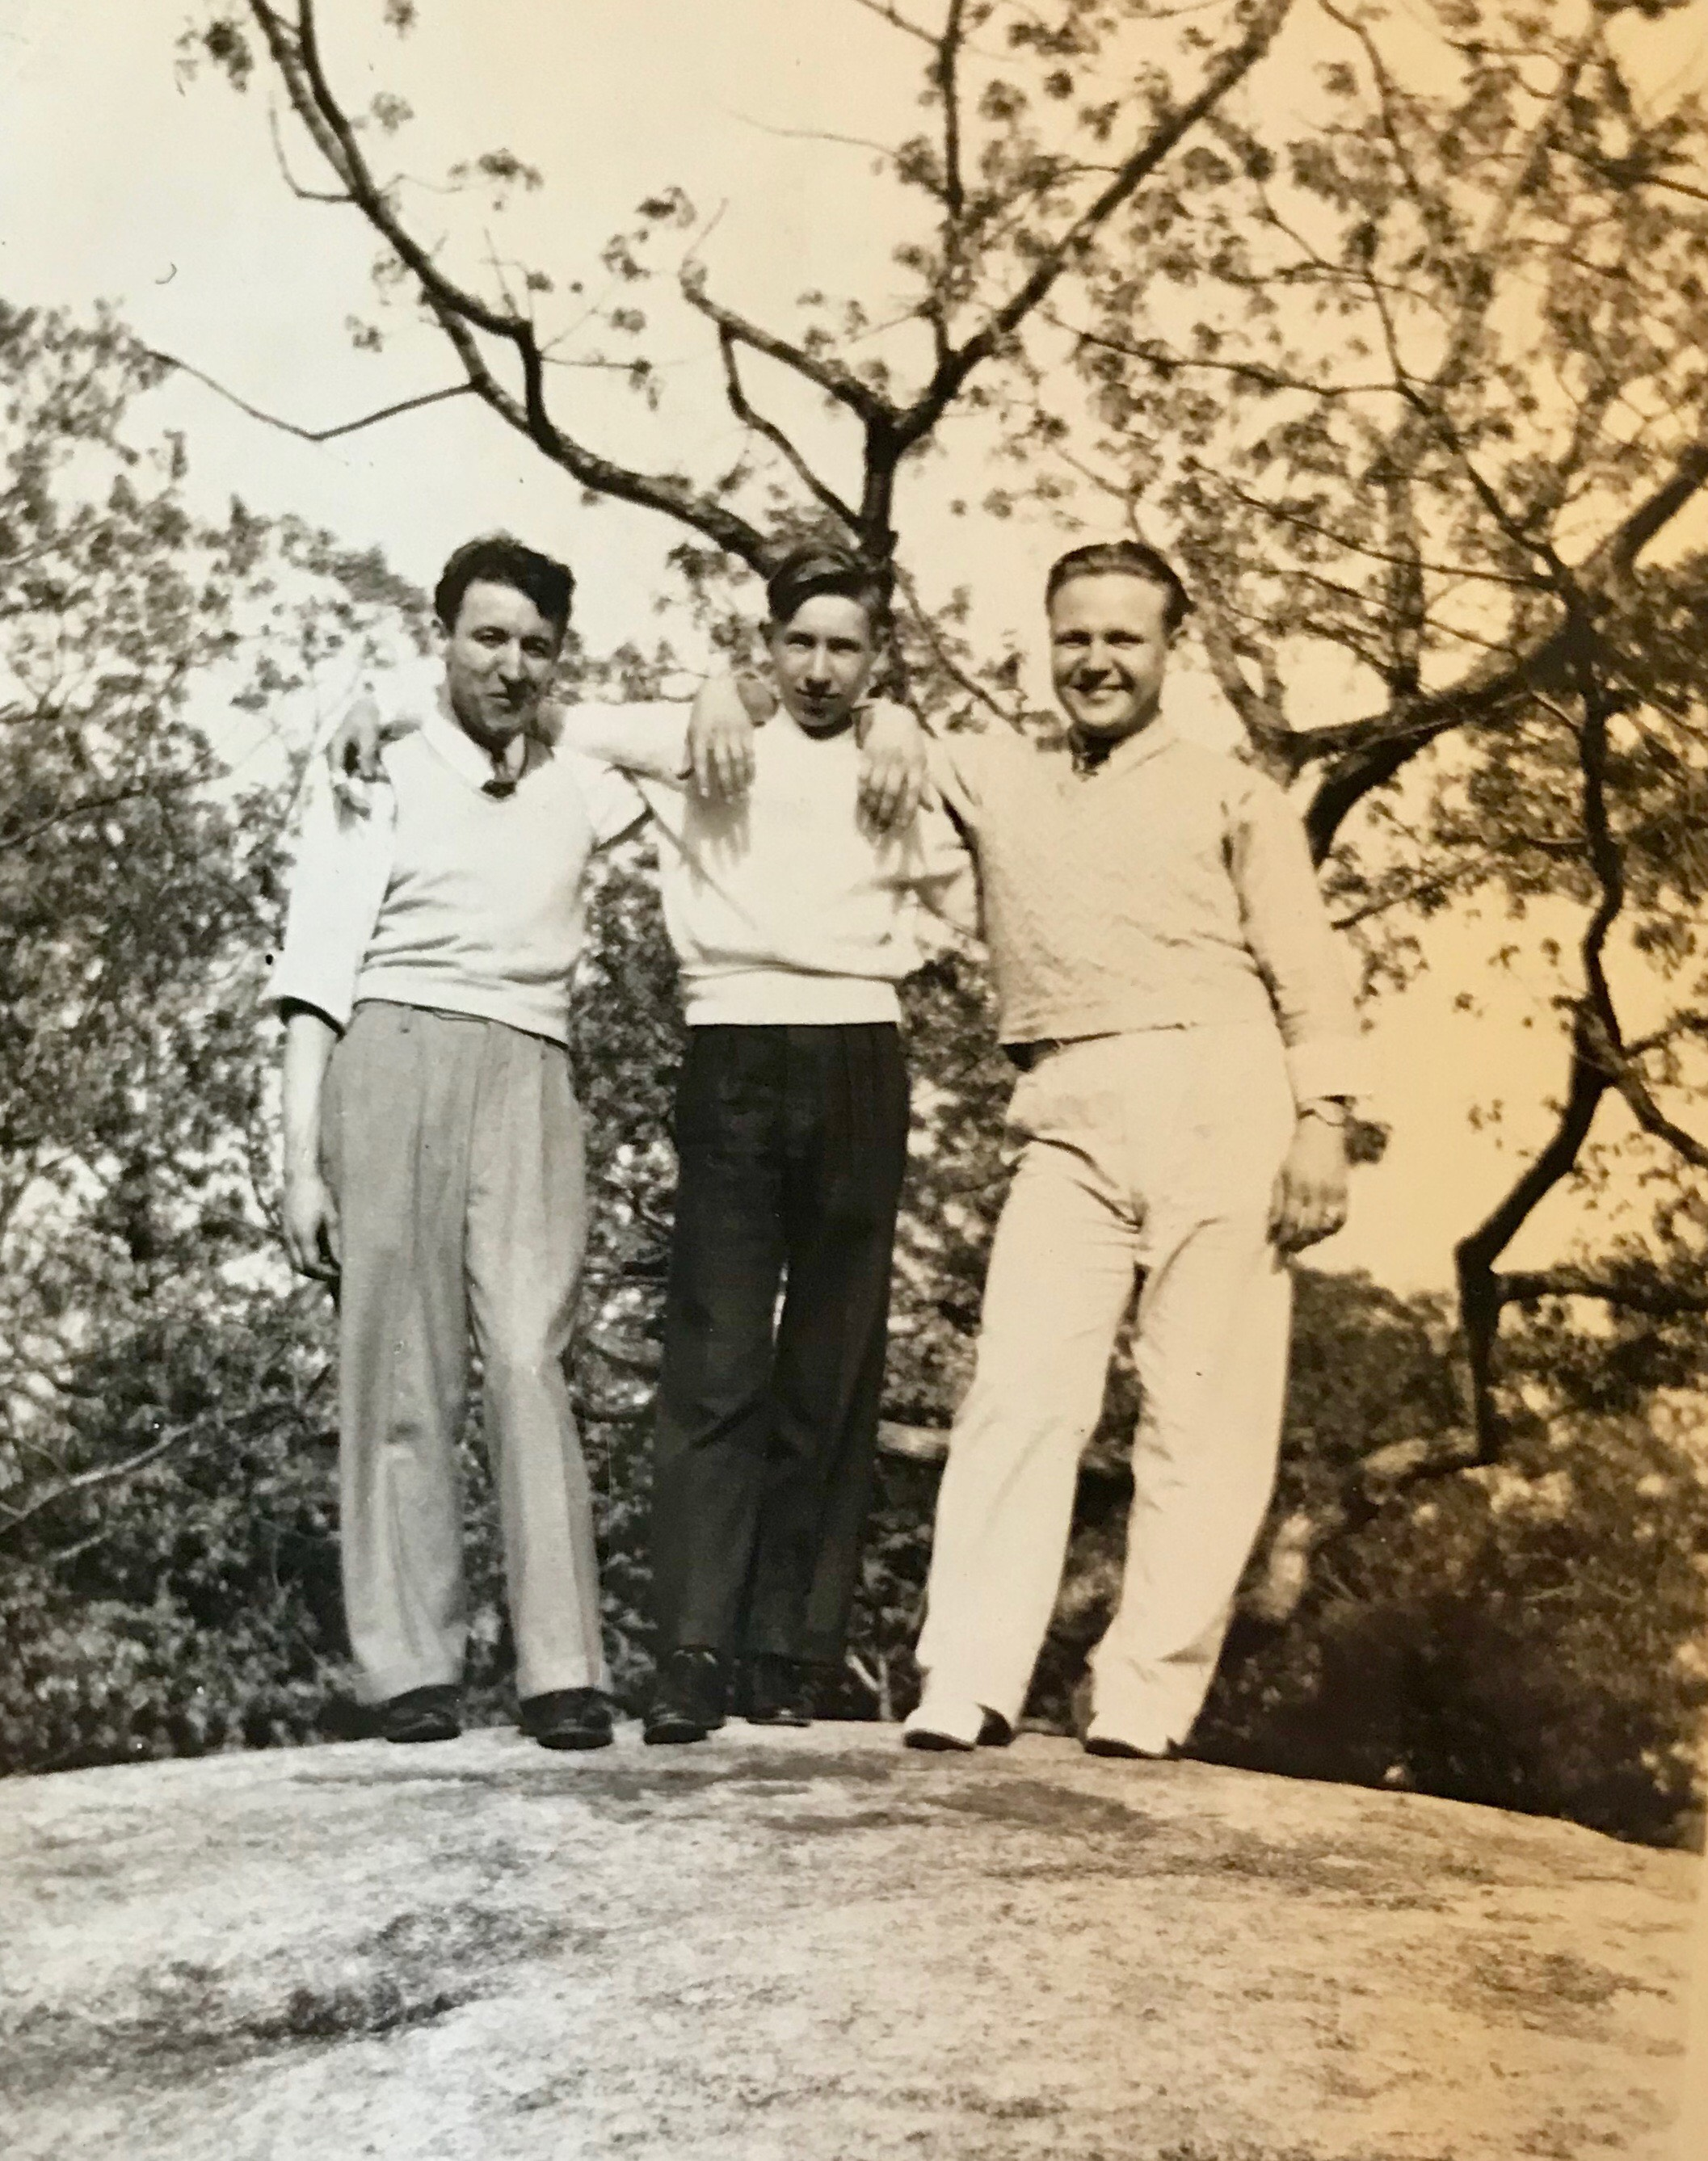 Ray, Joe, and unknown friend from (I'm assuming) the late 1930s